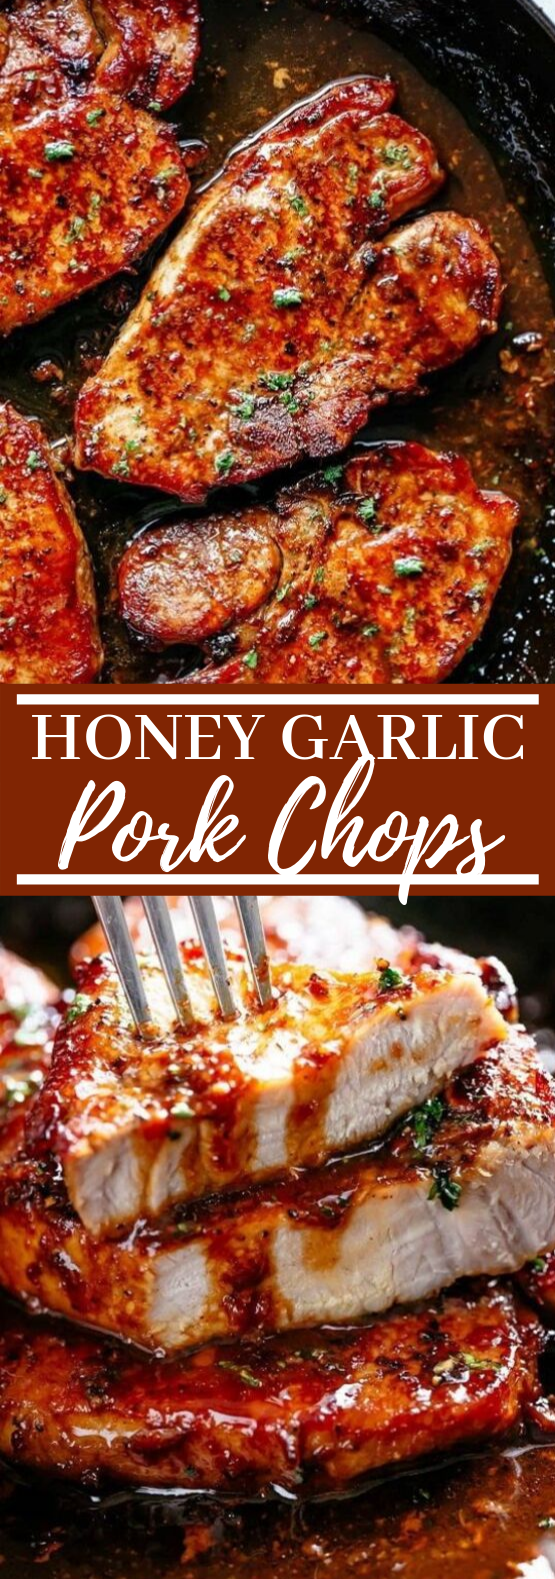 Easy Honey Garlic Pork Chops #dinner #pork